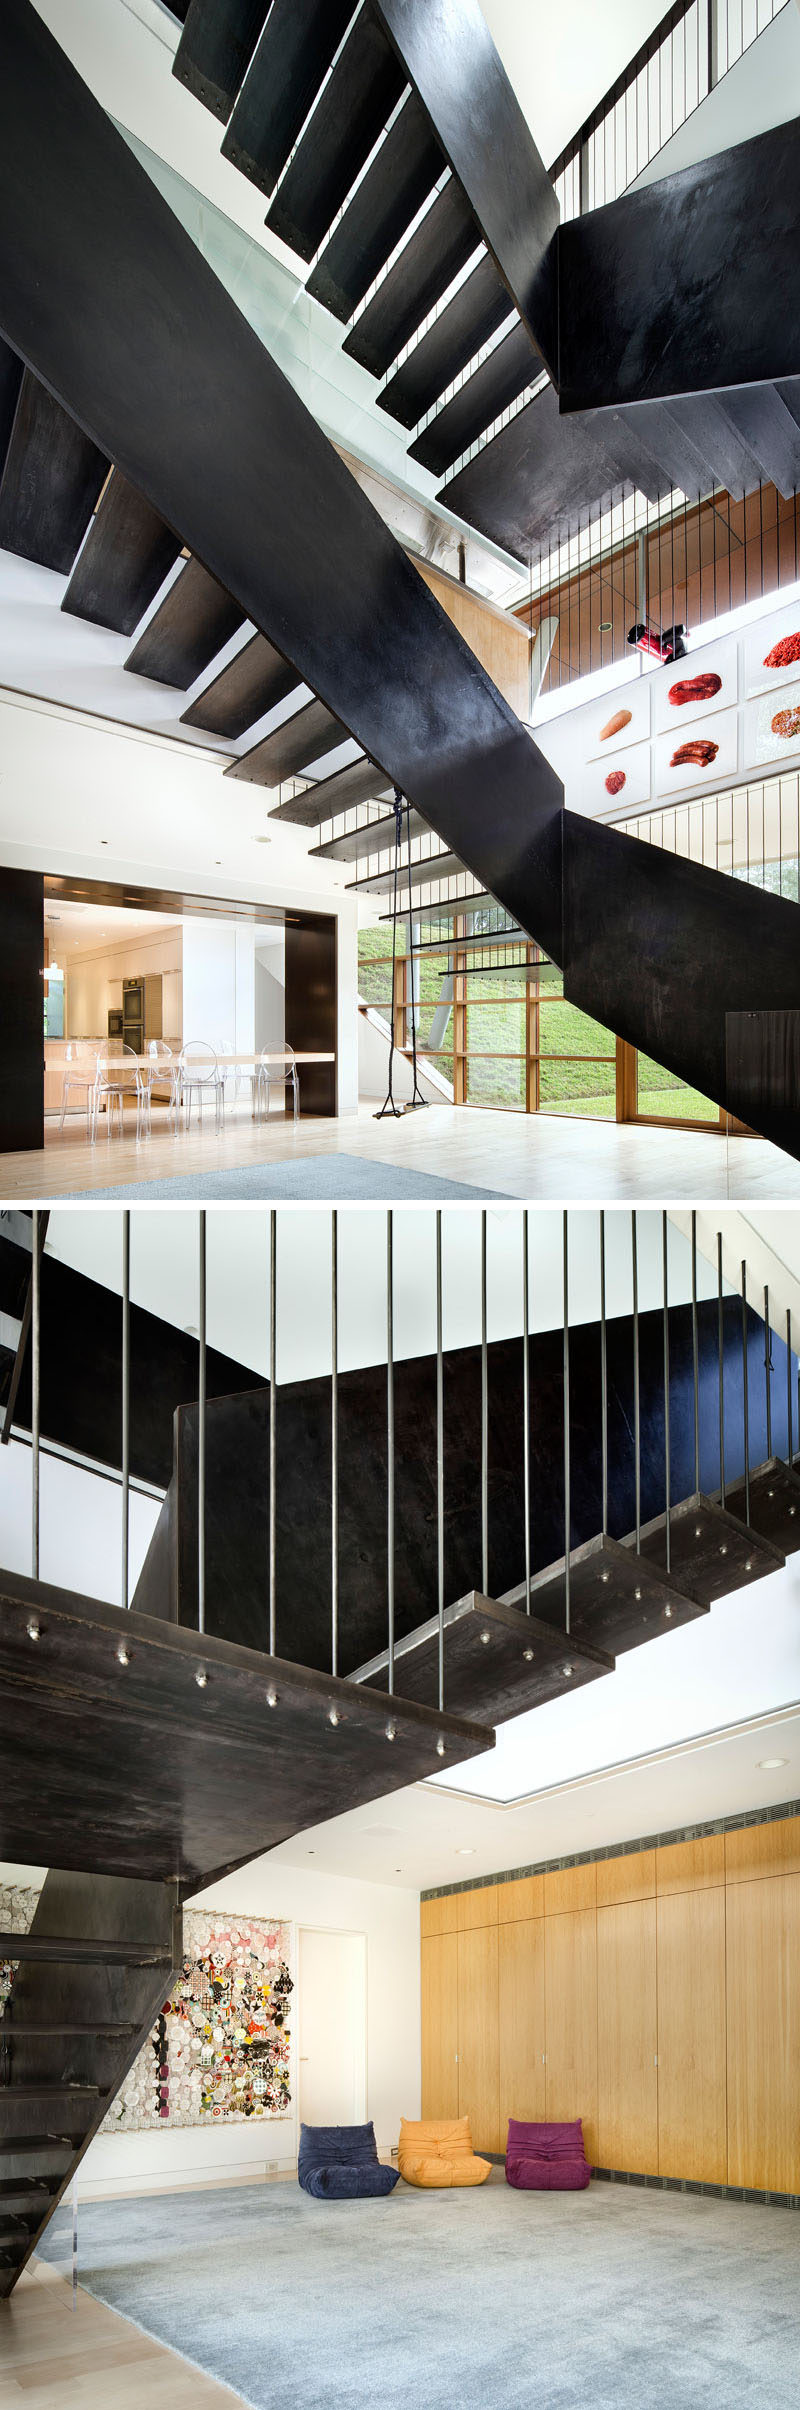 Industrial-looking stairs made from steel connect the various levels of this modern home.